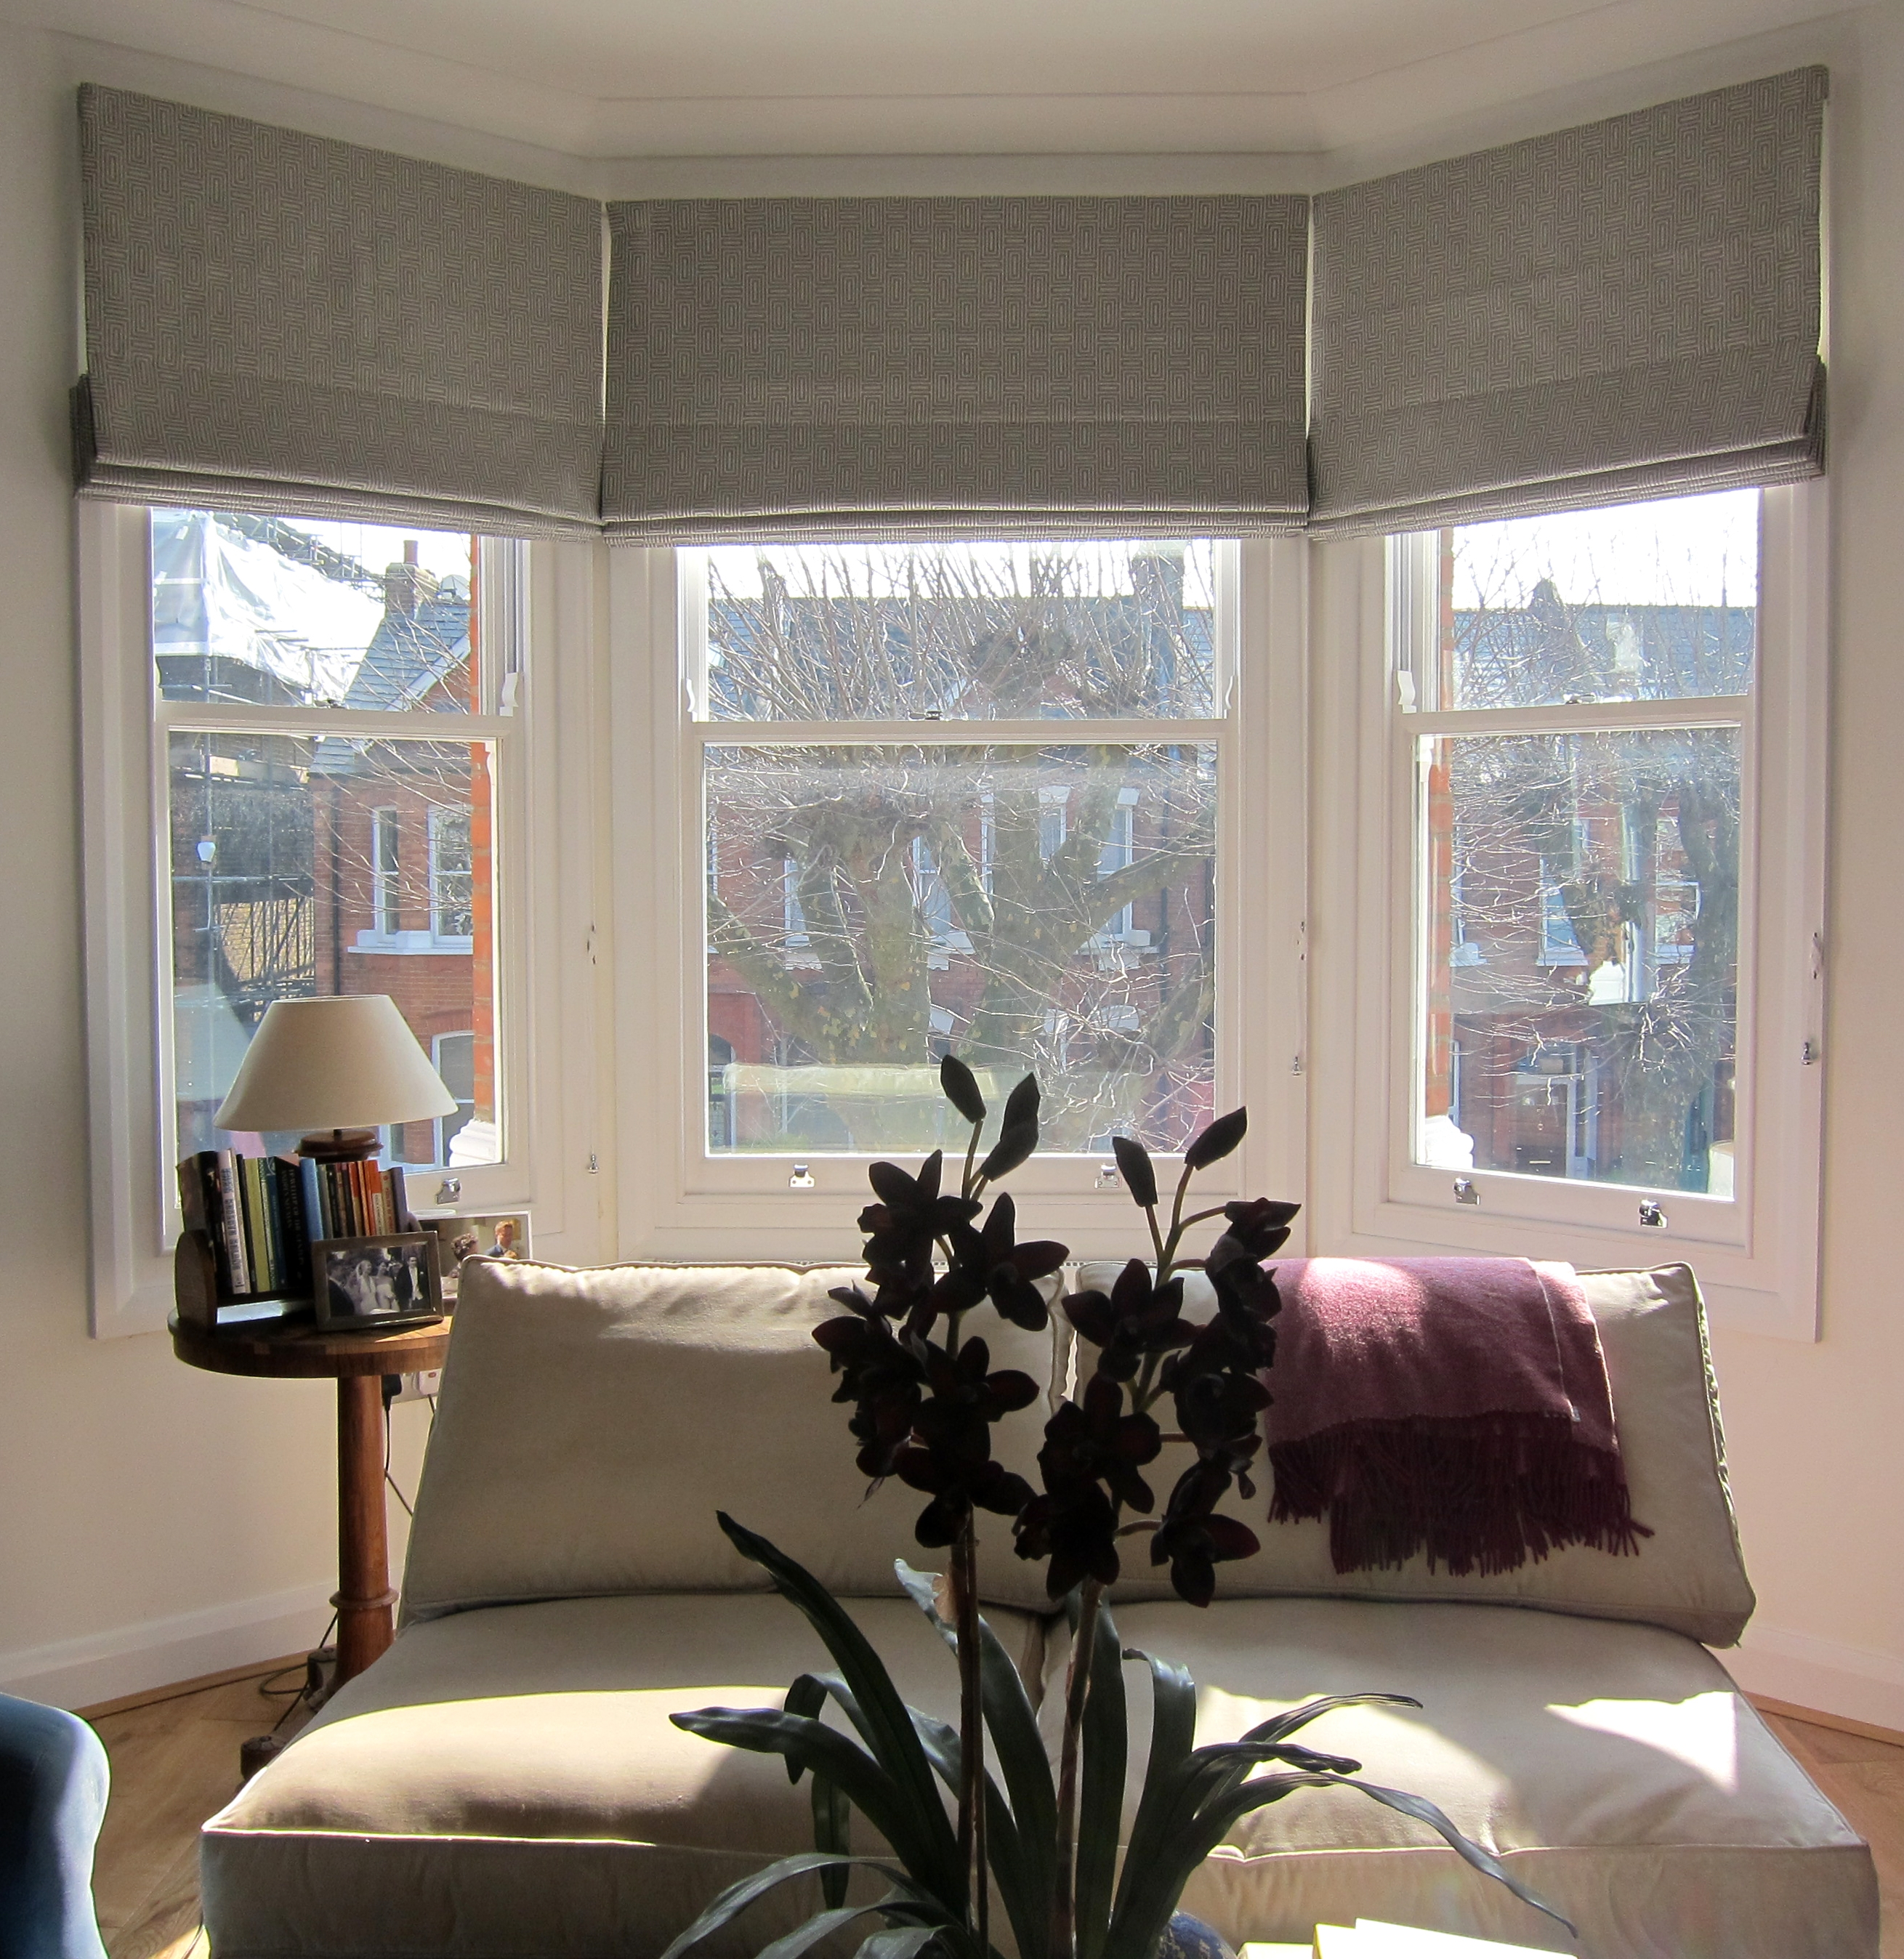 Geometric Patterned Roman Blinds In A Bay Window Could Work In Intended For Black And White Roman Blinds (Image 12 of 15)